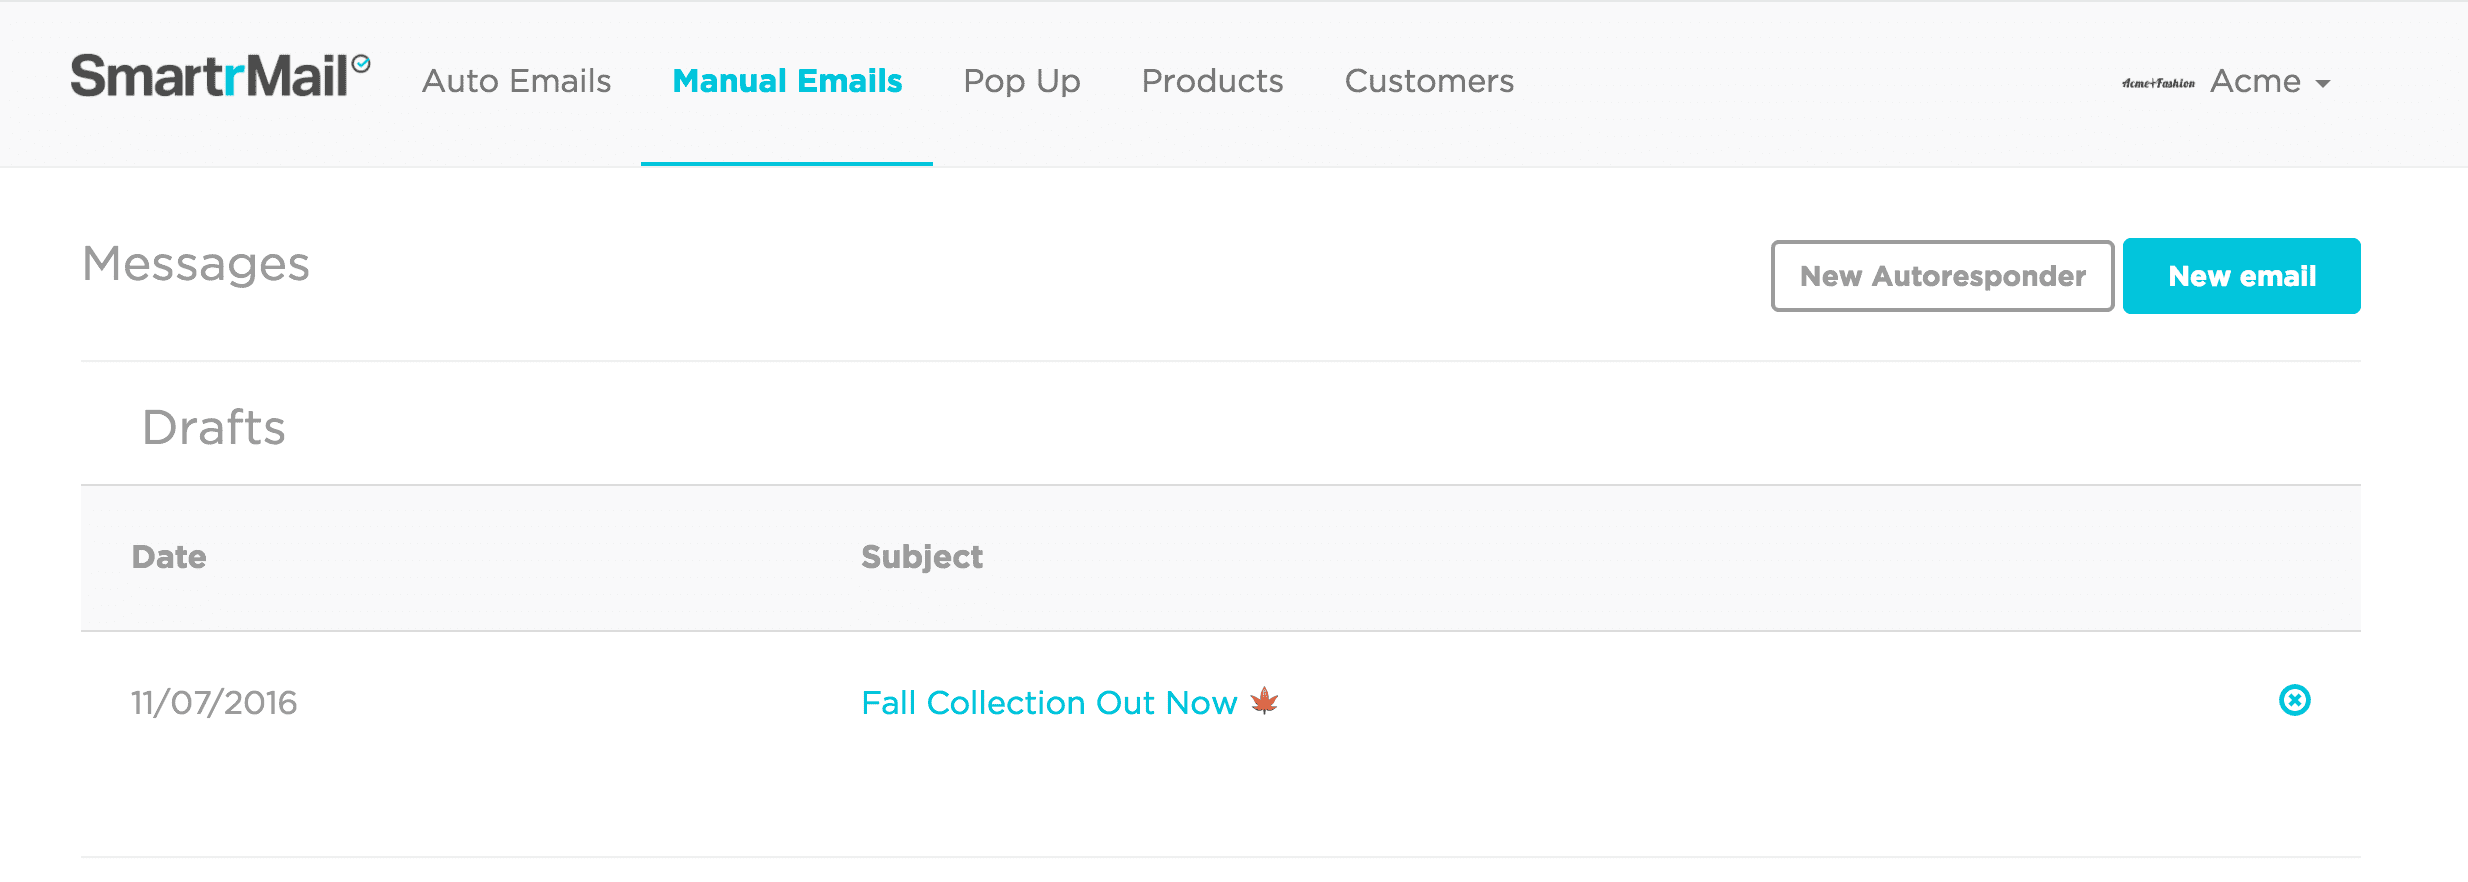 Manual Emails Tab